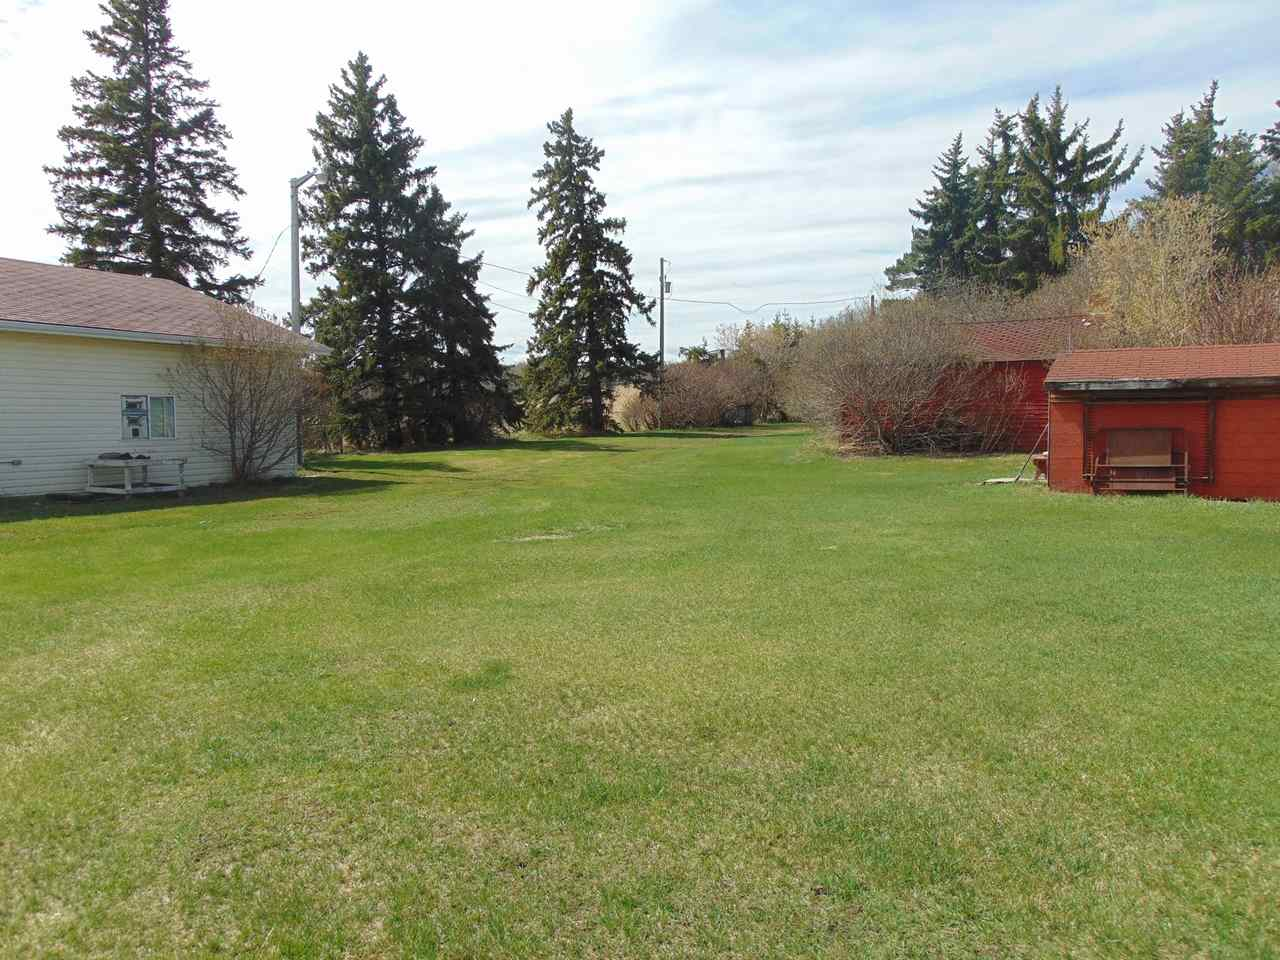 Photo 19: 56215 Rge Rd 234: Rural Sturgeon County Manufactured Home for sale : MLS(r) # E4063049